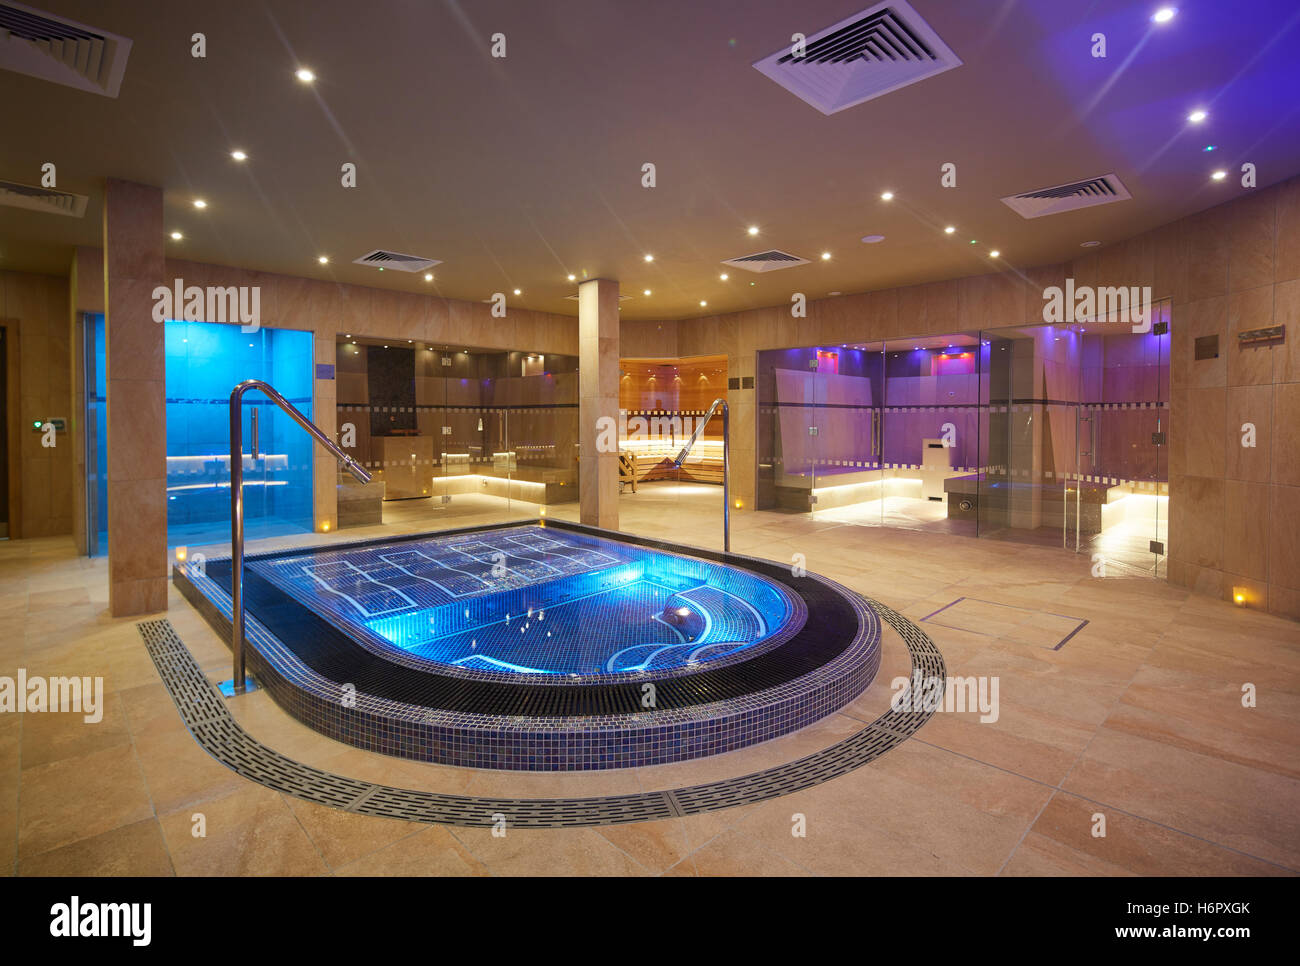 Spa pool interior modern posh clean inside spa nelson sauna space